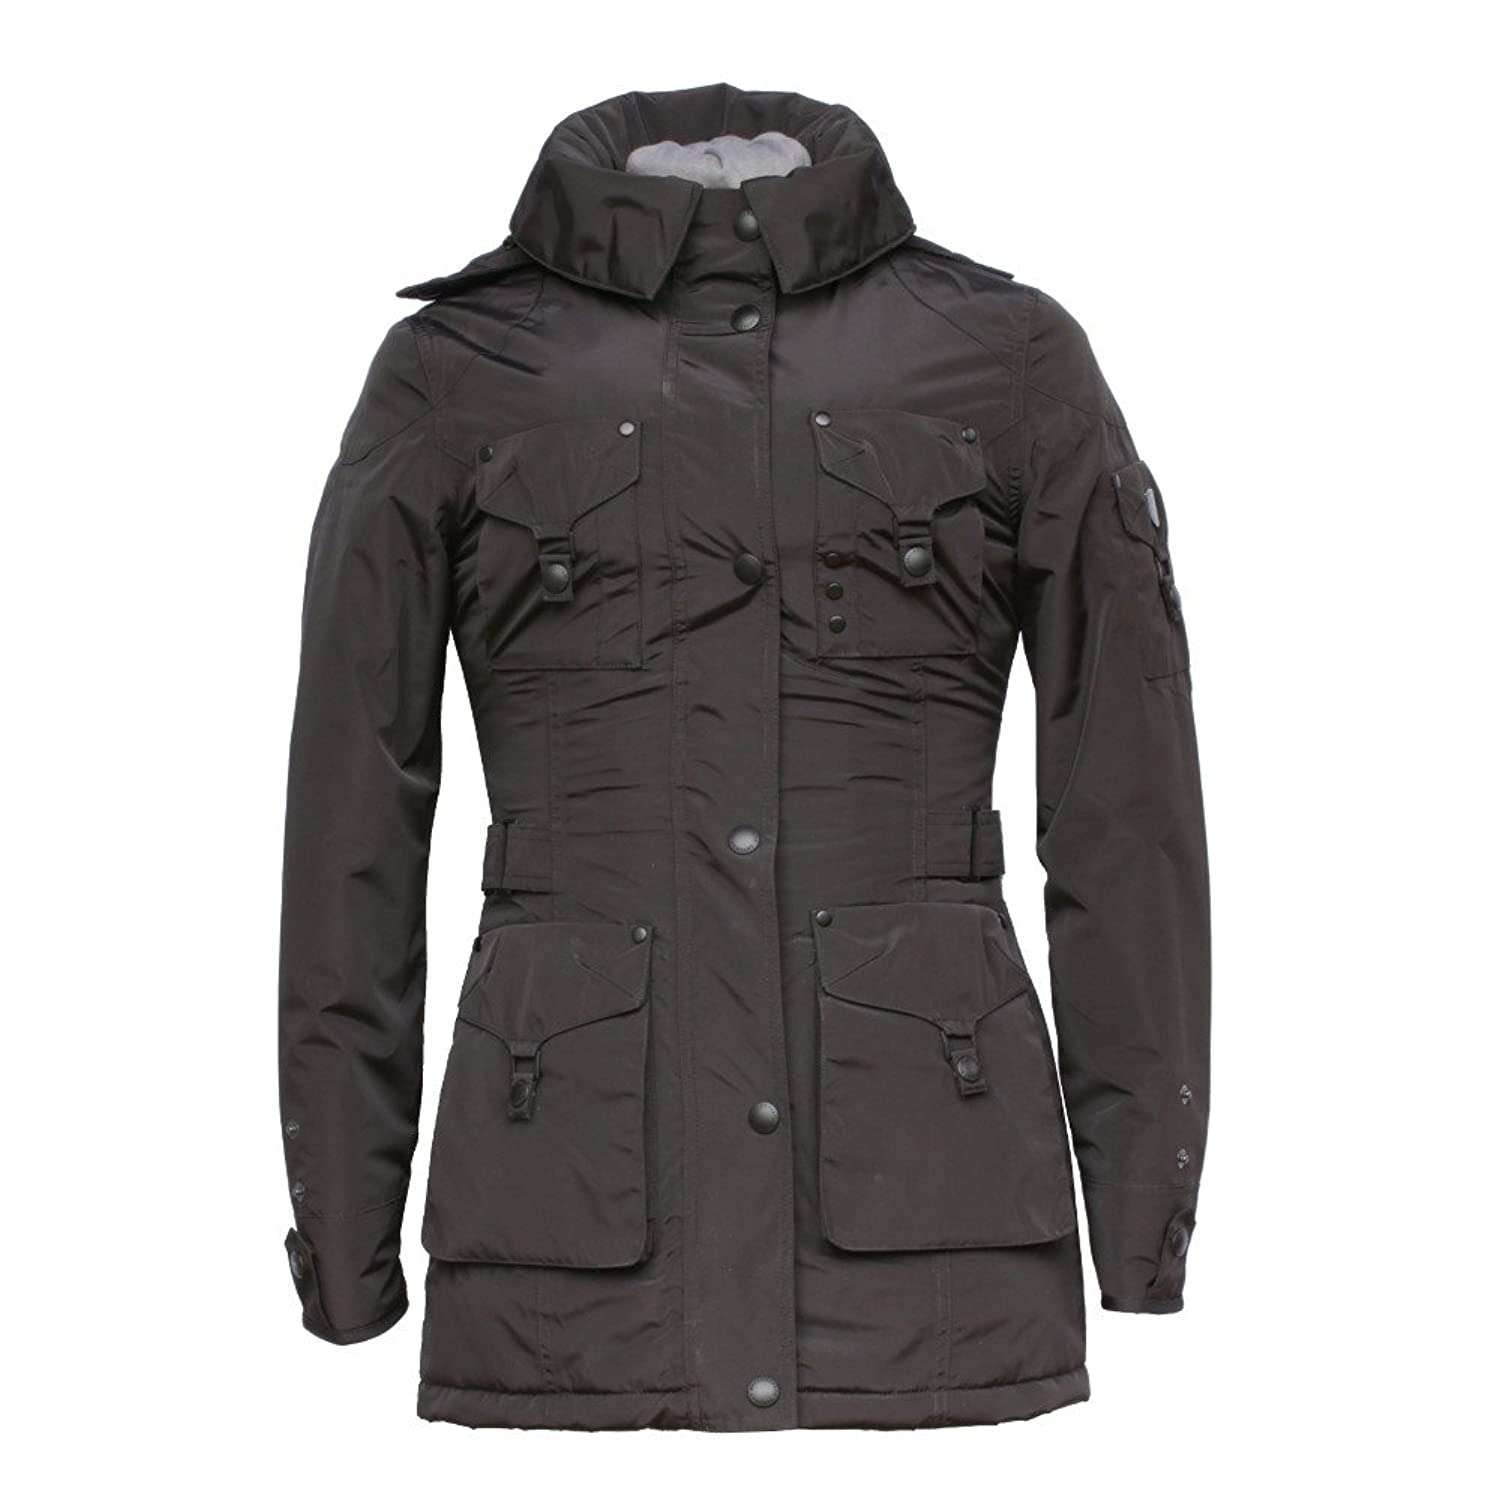 Wellensteyn, Damen-Funktionsjacke Titania Winter TITW-382 bestellen